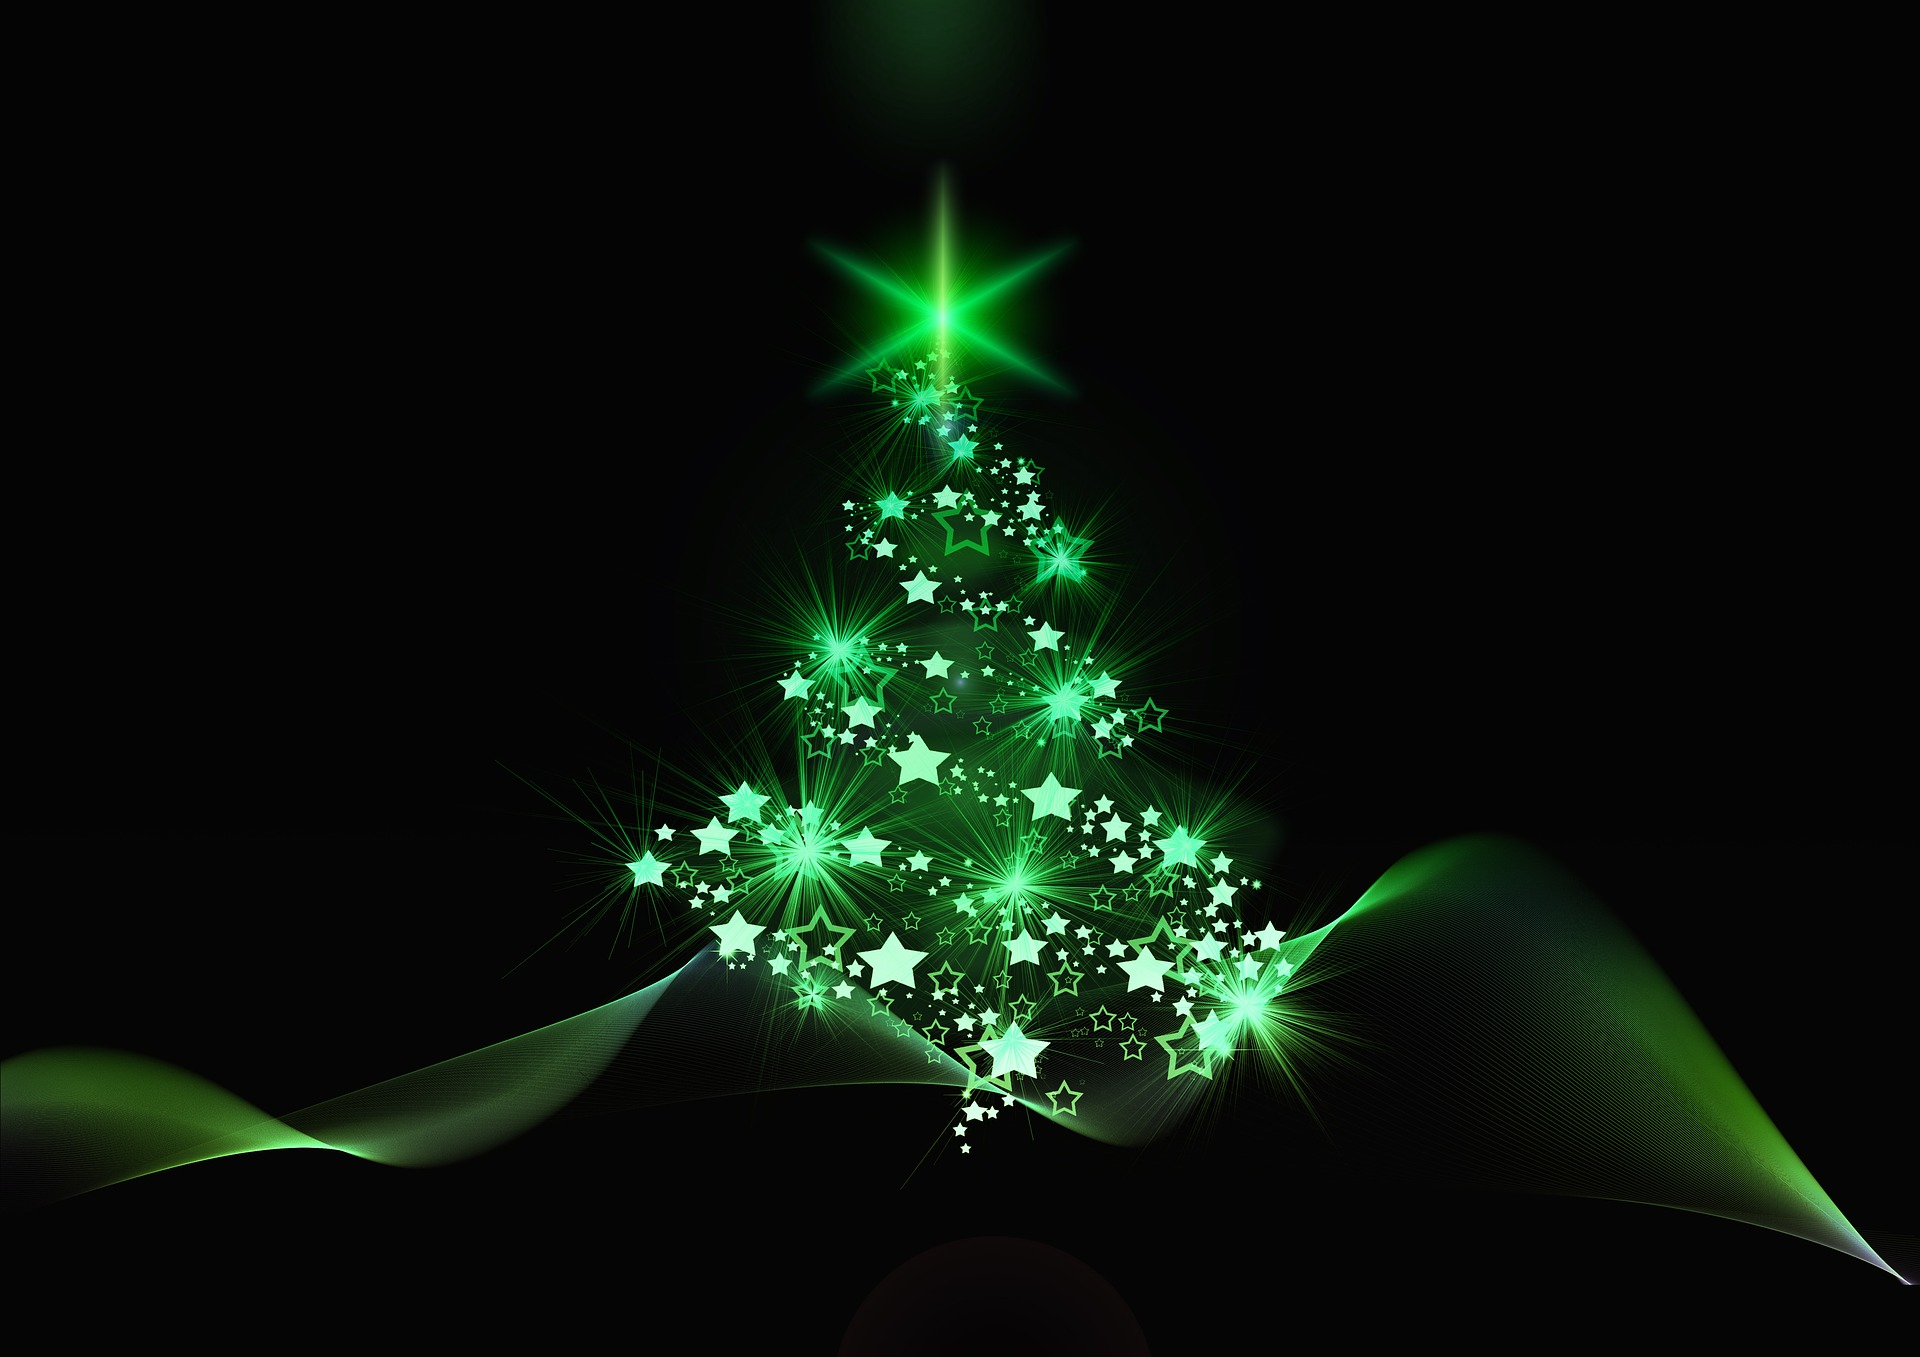 christmas tree green light. geralt via Pixabay. CC0 Creative Commons